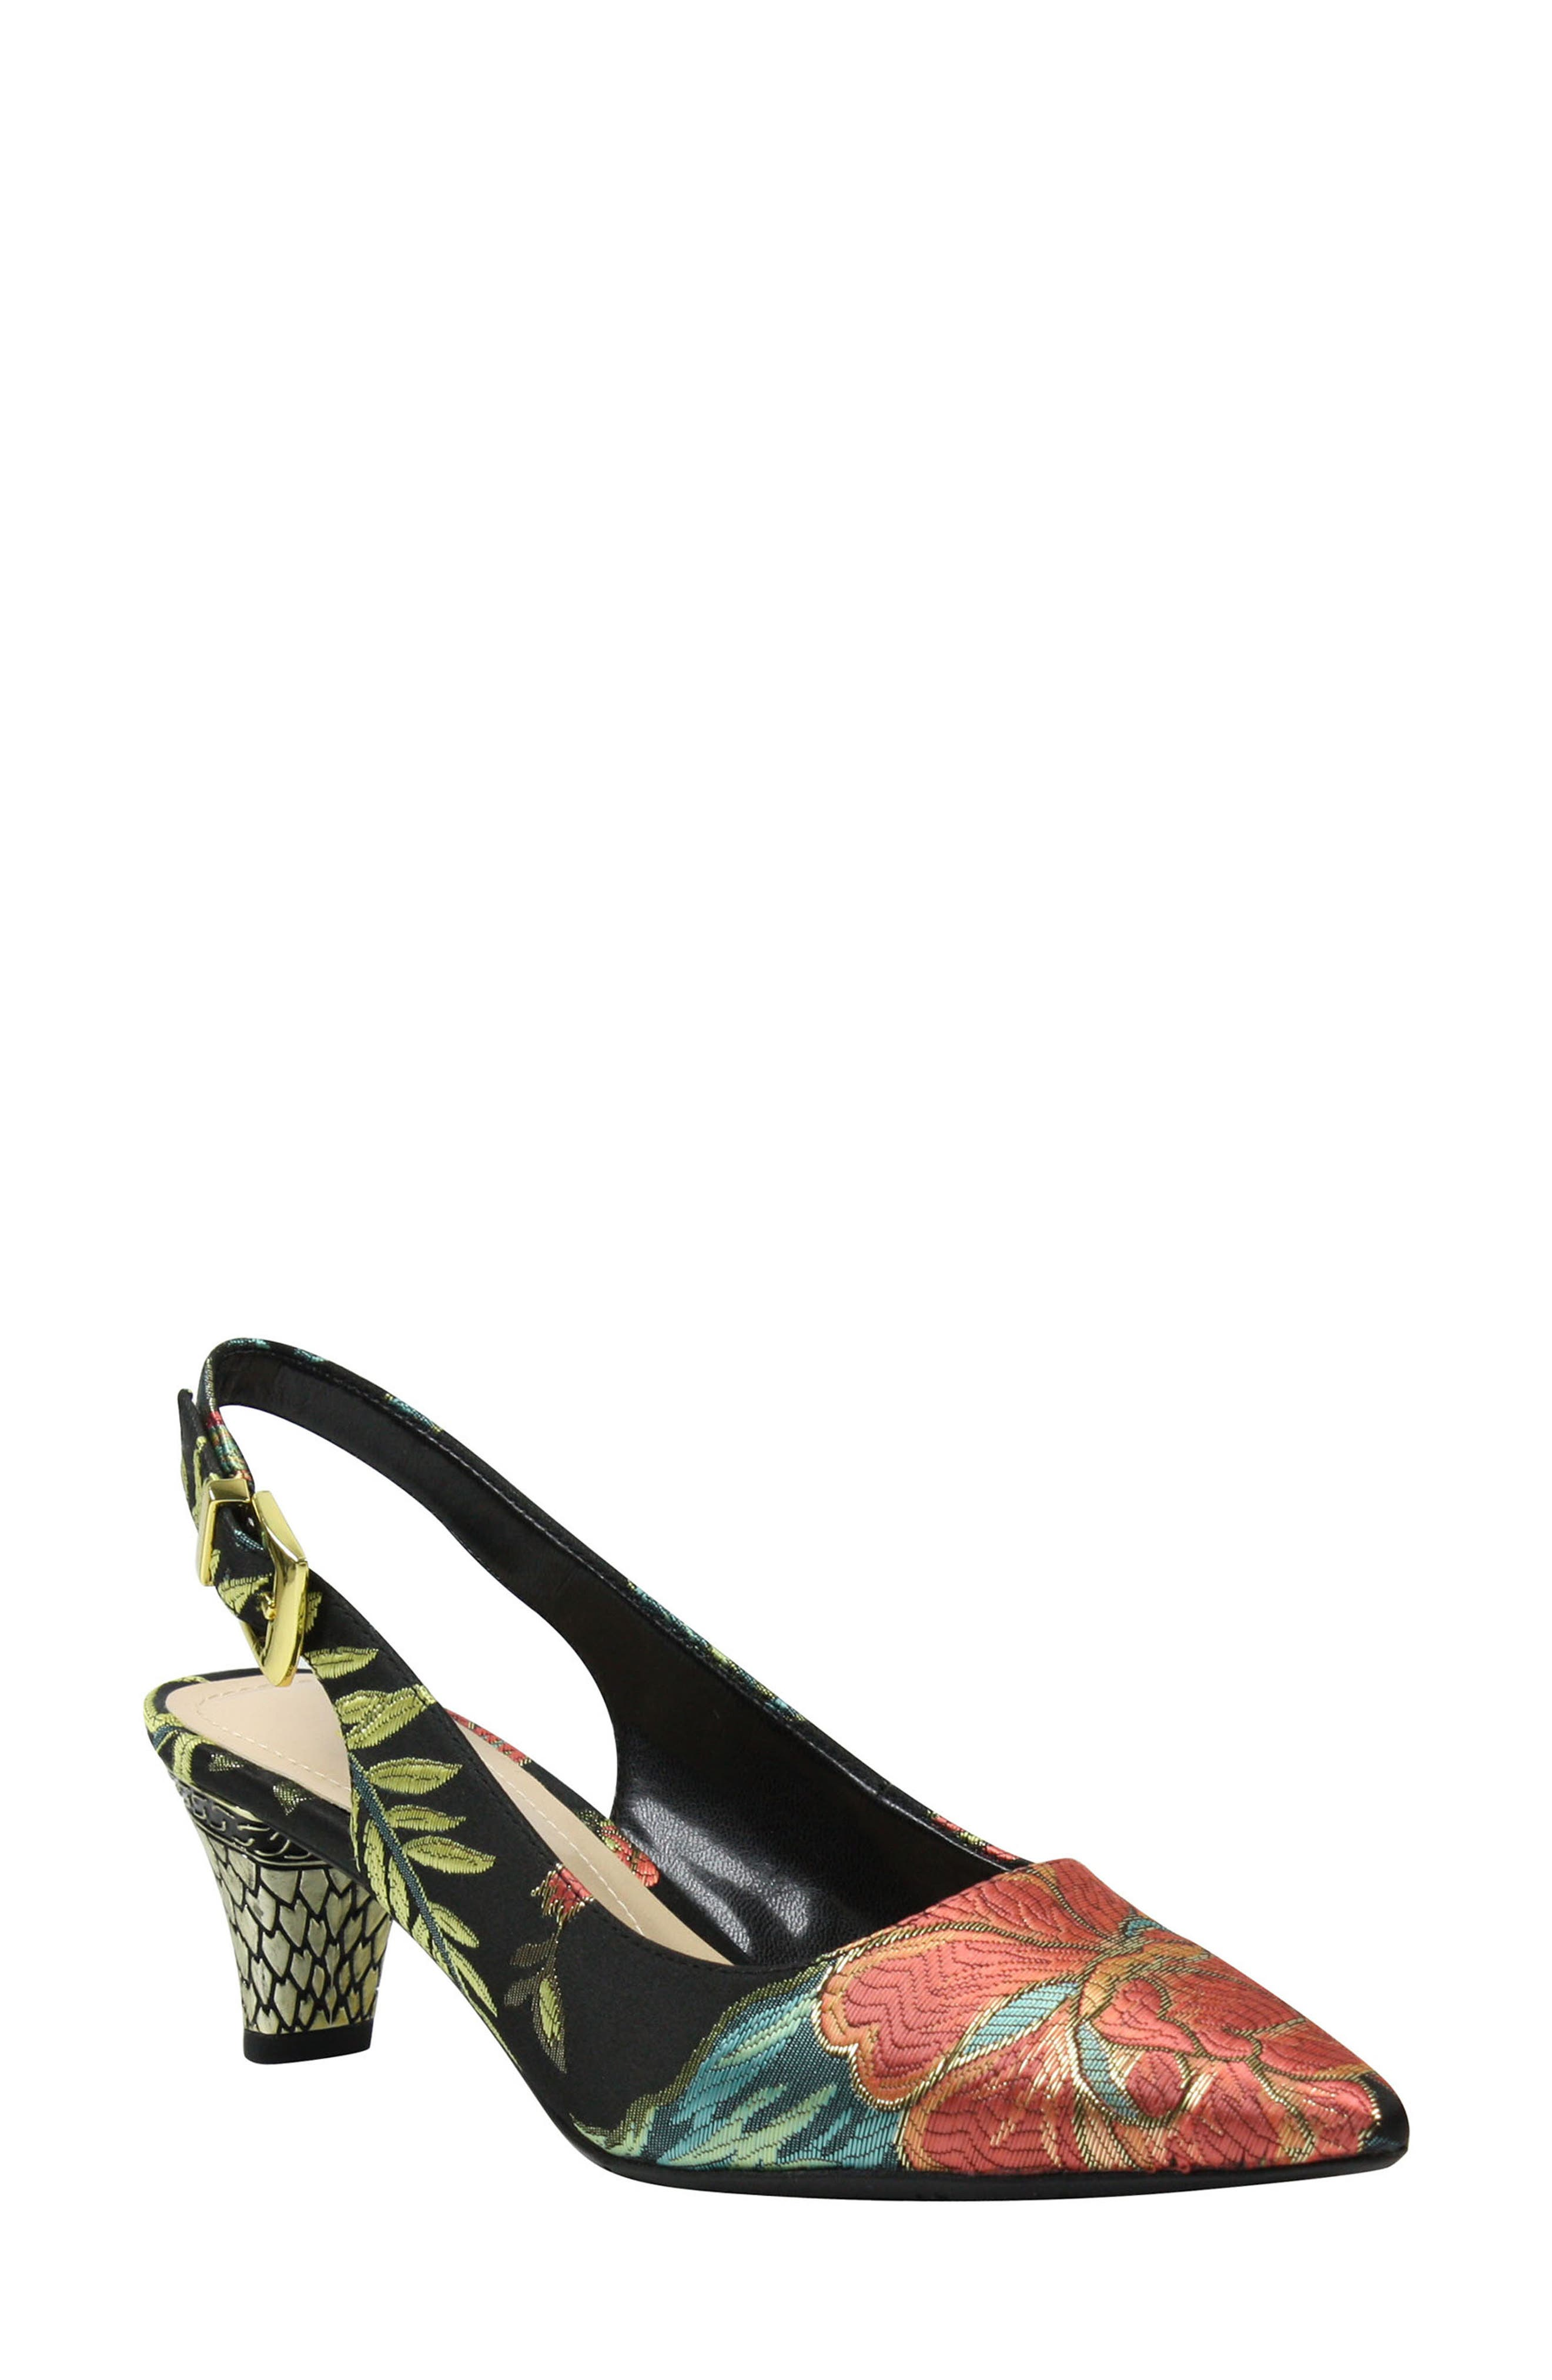 Mayetta Slingback Pump,                         Main,                         color, Black/ Teal/ Coral Multi